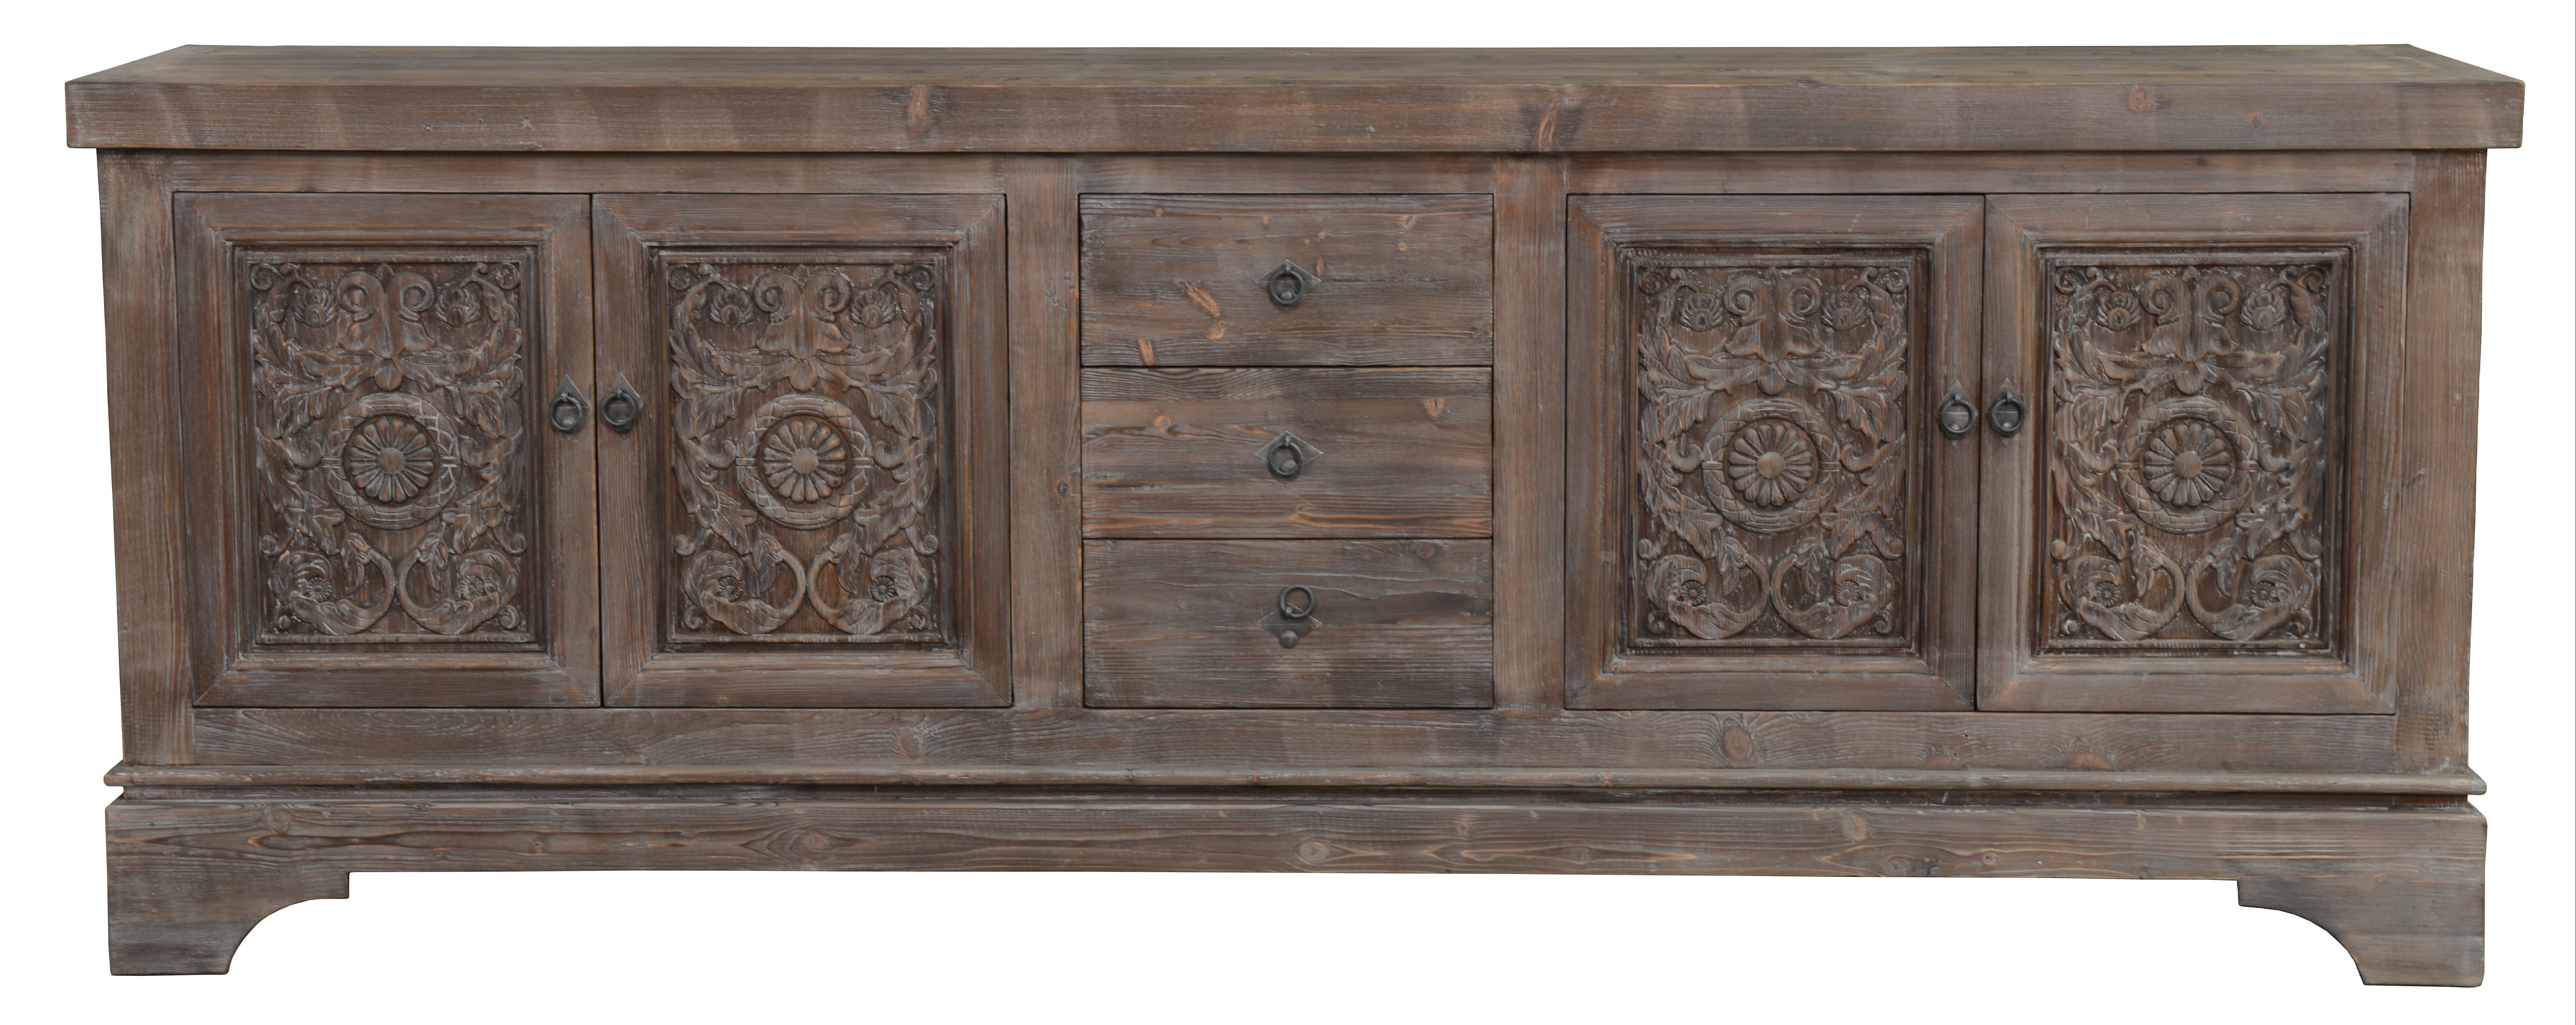 Wayfair Throughout Most Current Seven Seas Asian Sideboards (Gallery 15 of 20)